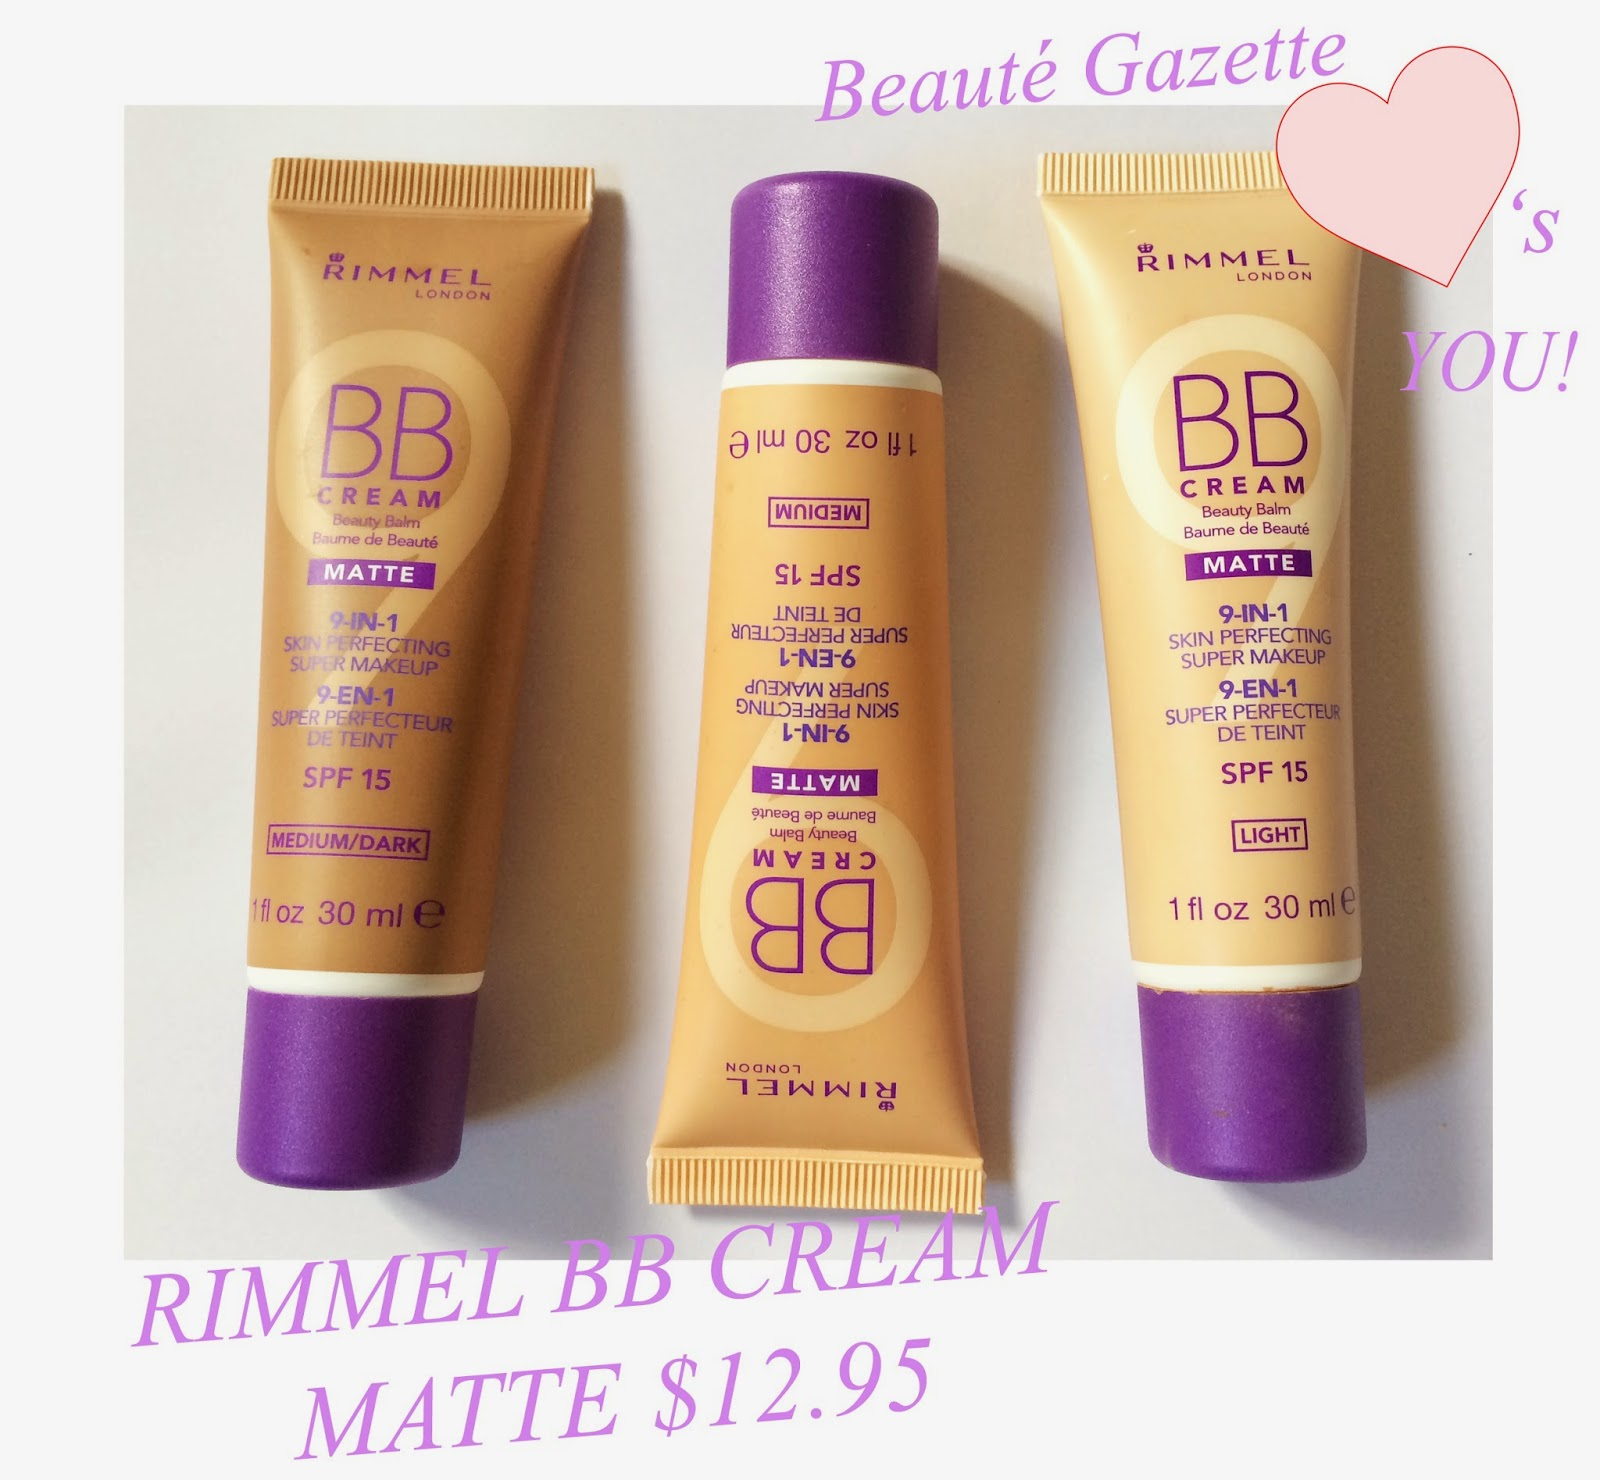 beaut gazette rimmel bb cream matte review and swatches. Black Bedroom Furniture Sets. Home Design Ideas